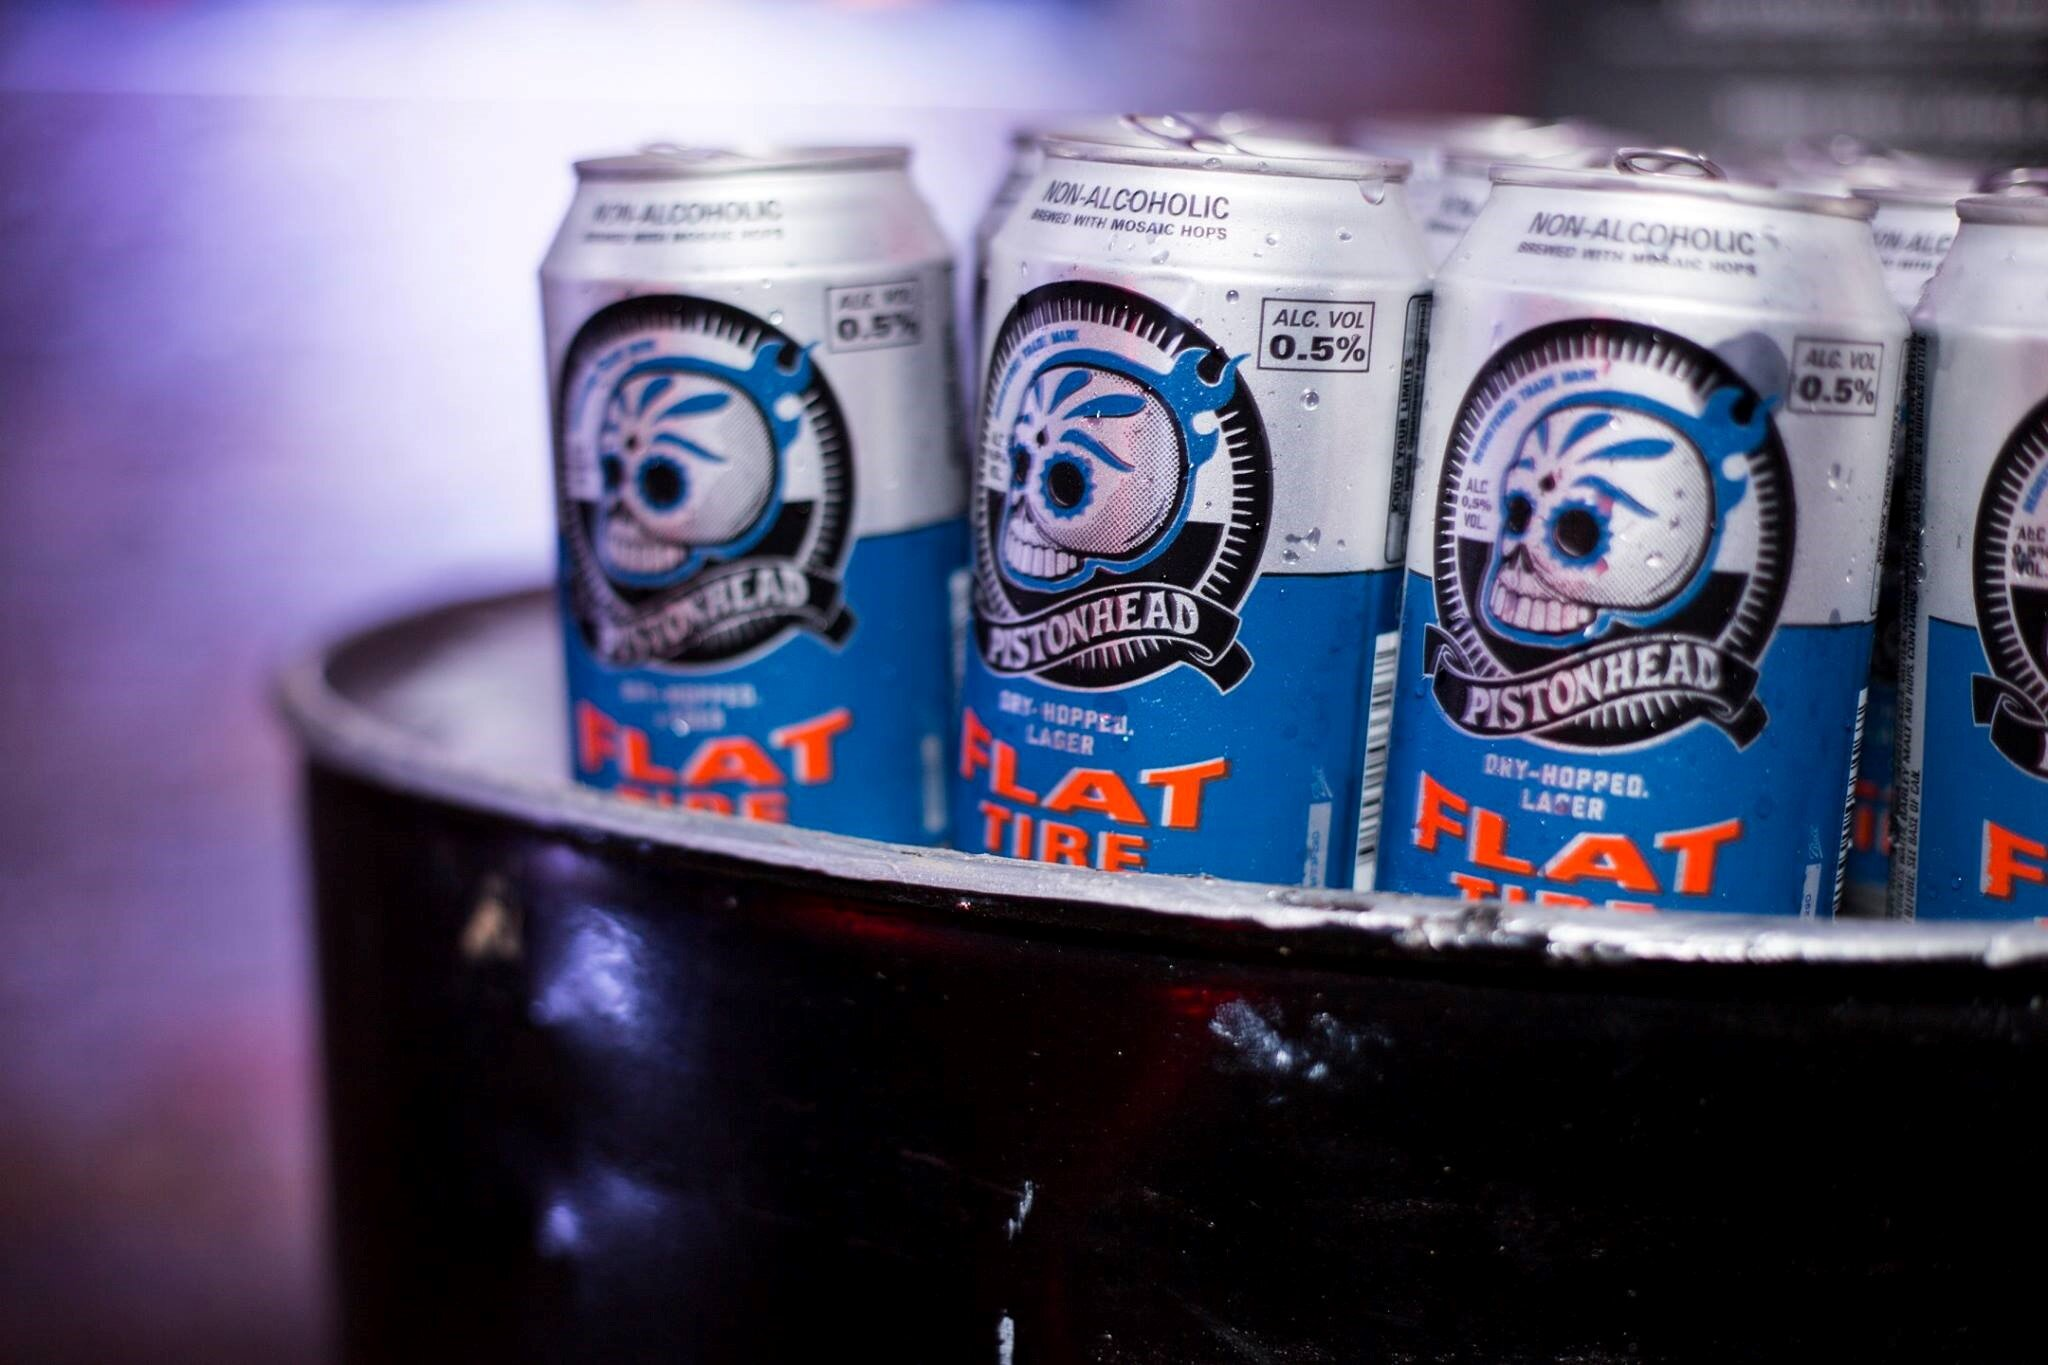 Pistonhead have a non-alcoholic version of their Flat Tire lager